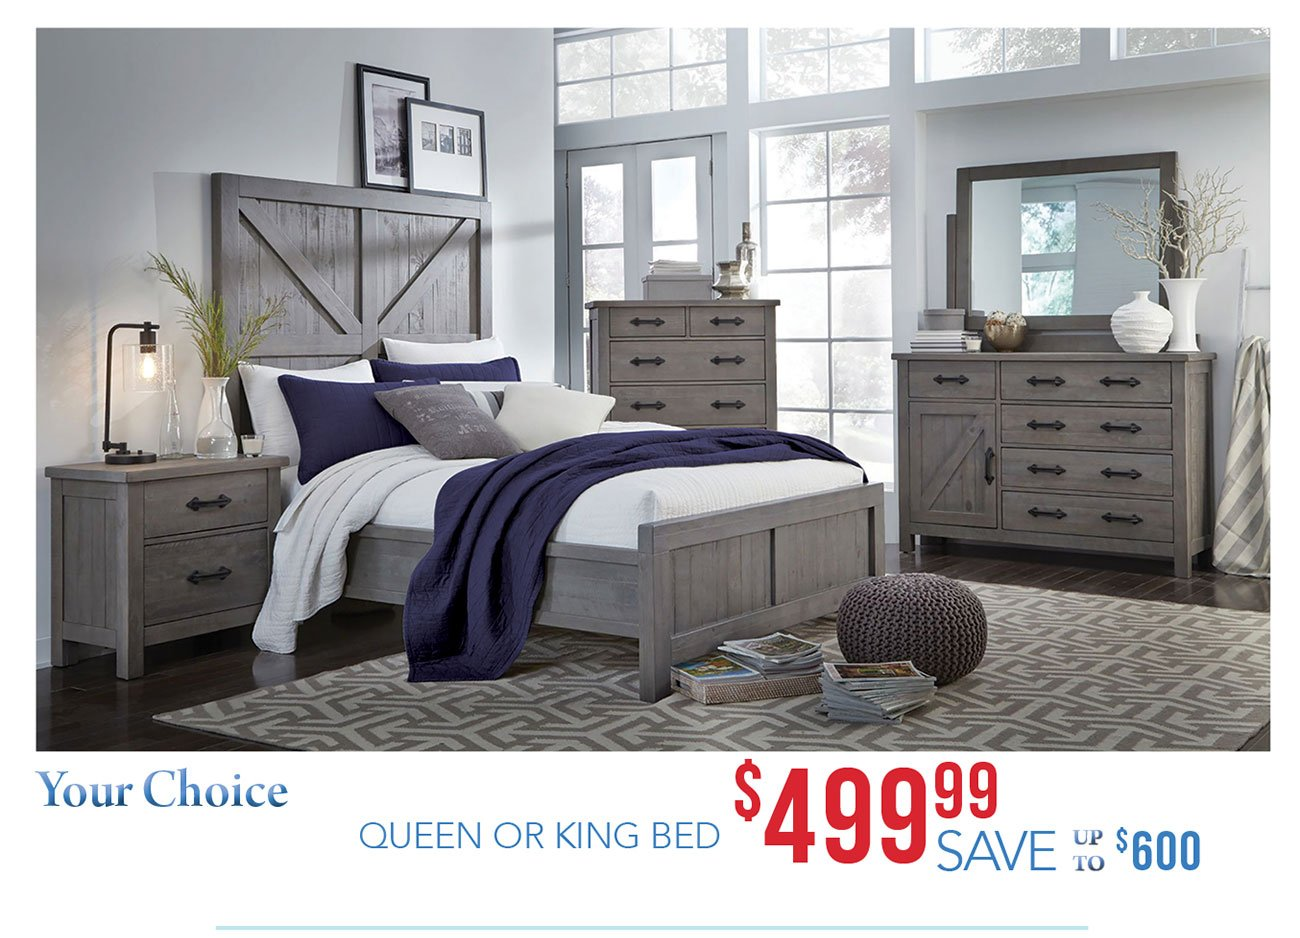 Queen-or-king-bed